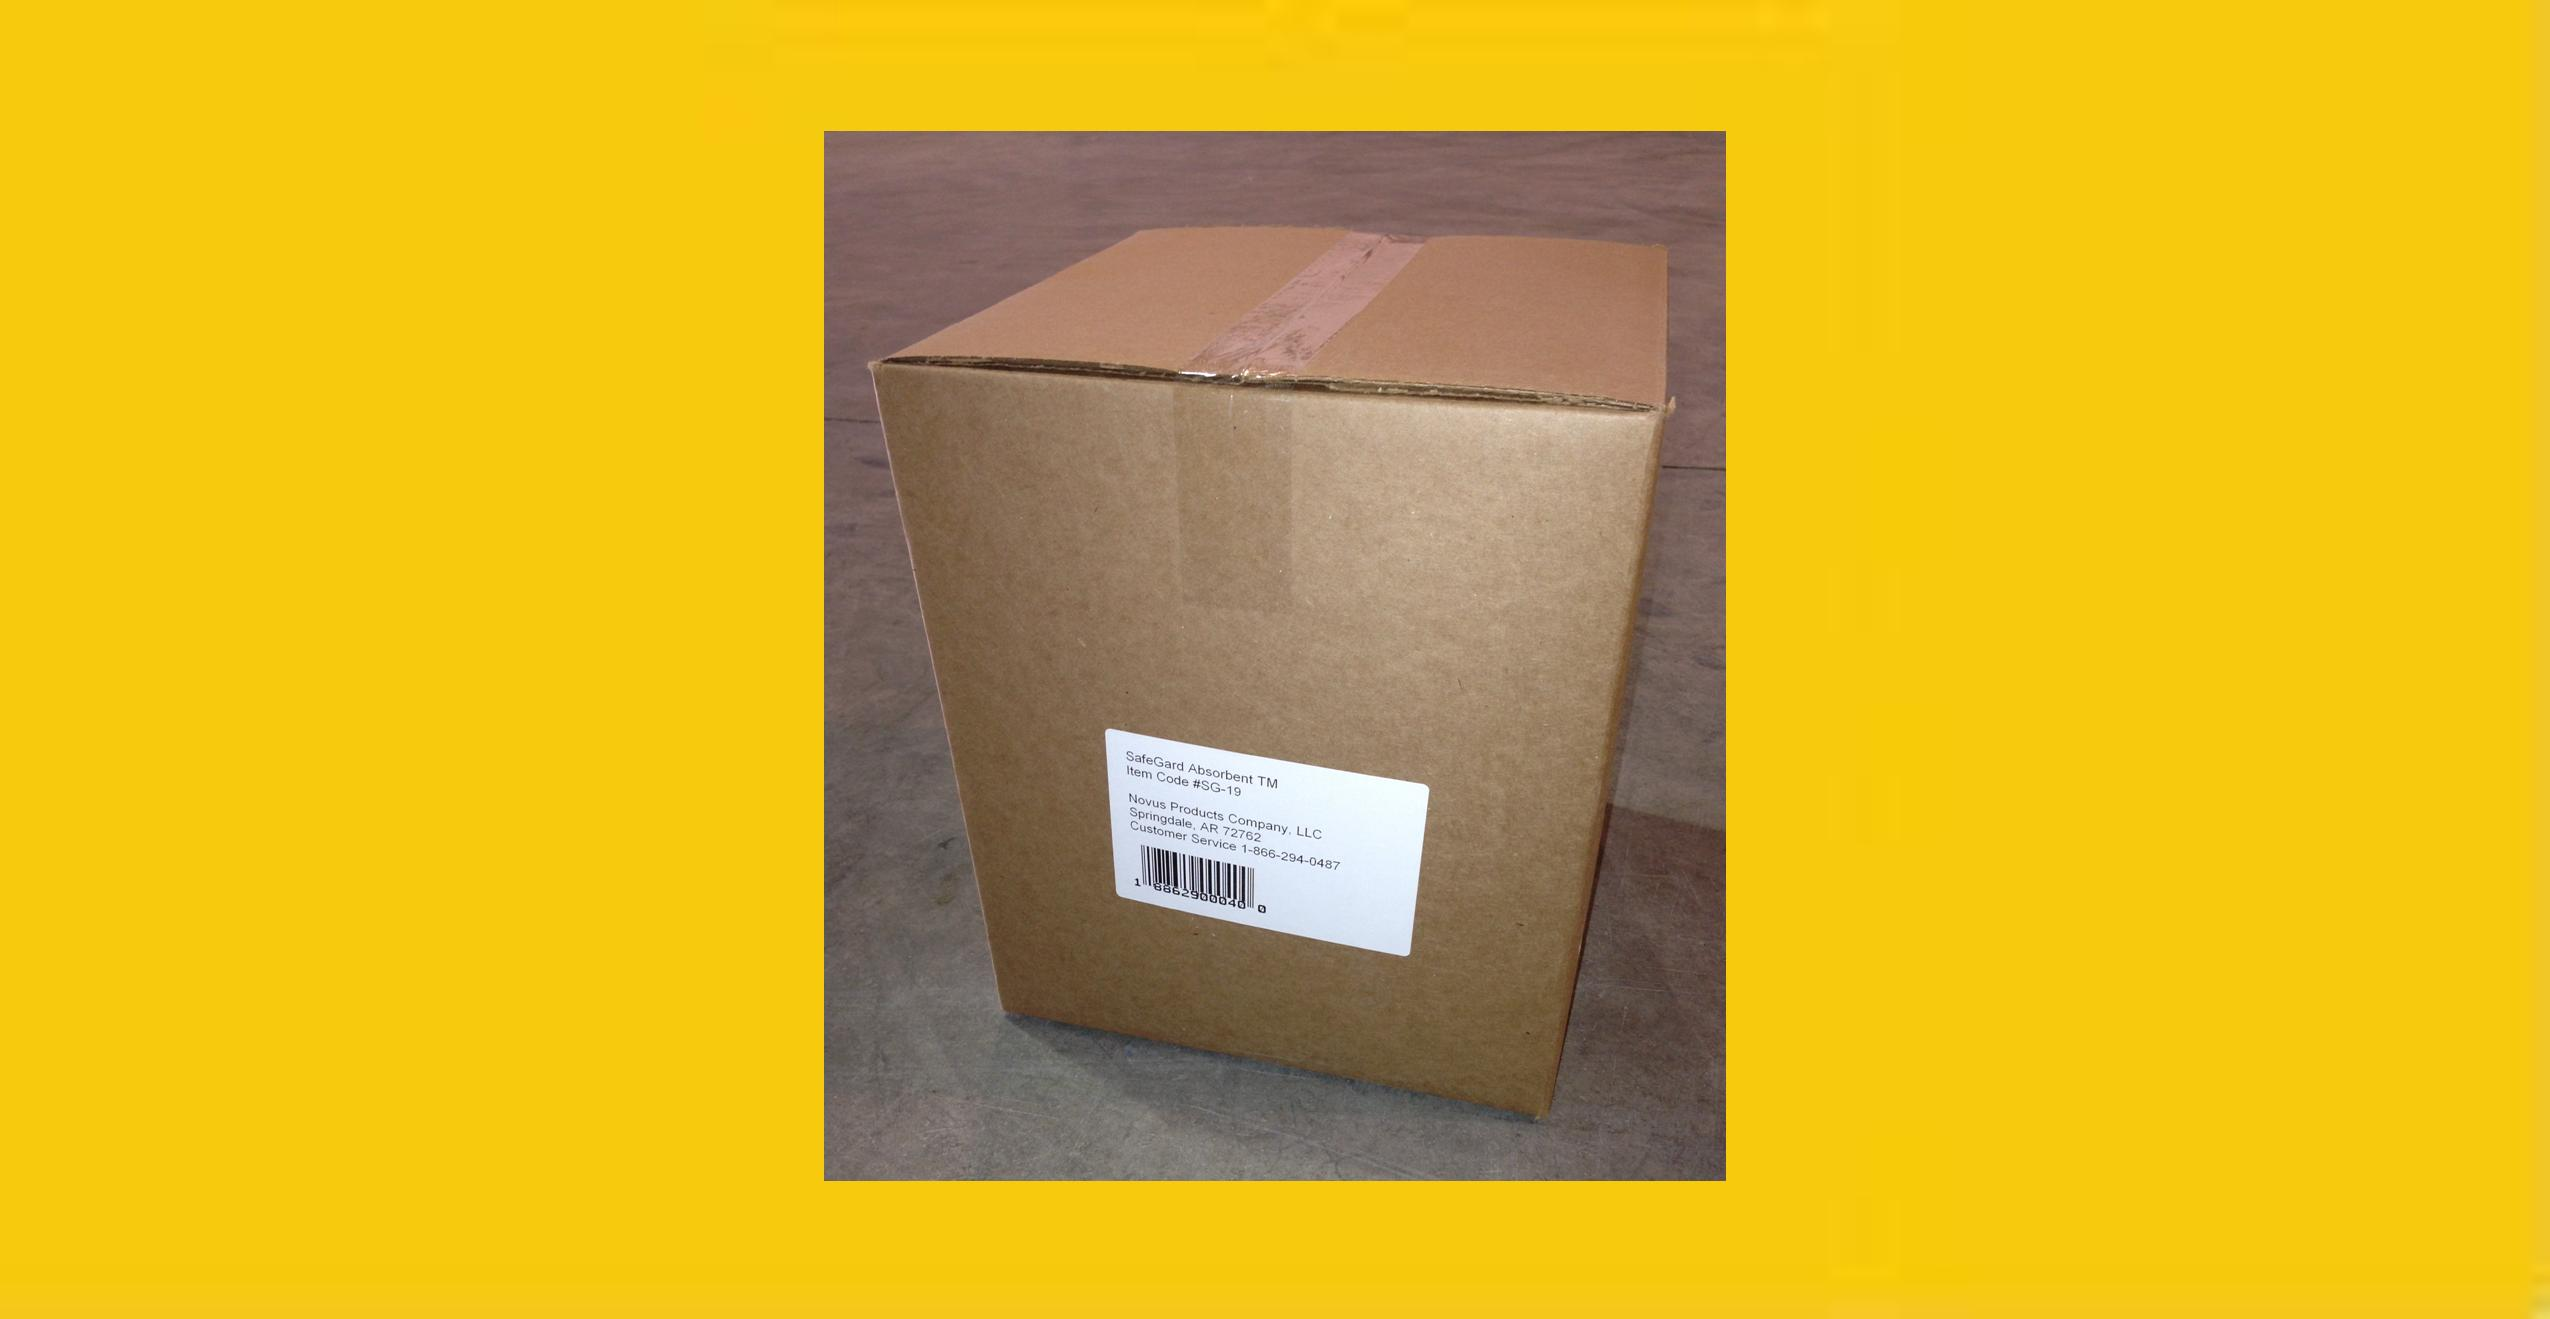 SafeGard Absorbent Universal - 1 Cubic Bag in Box